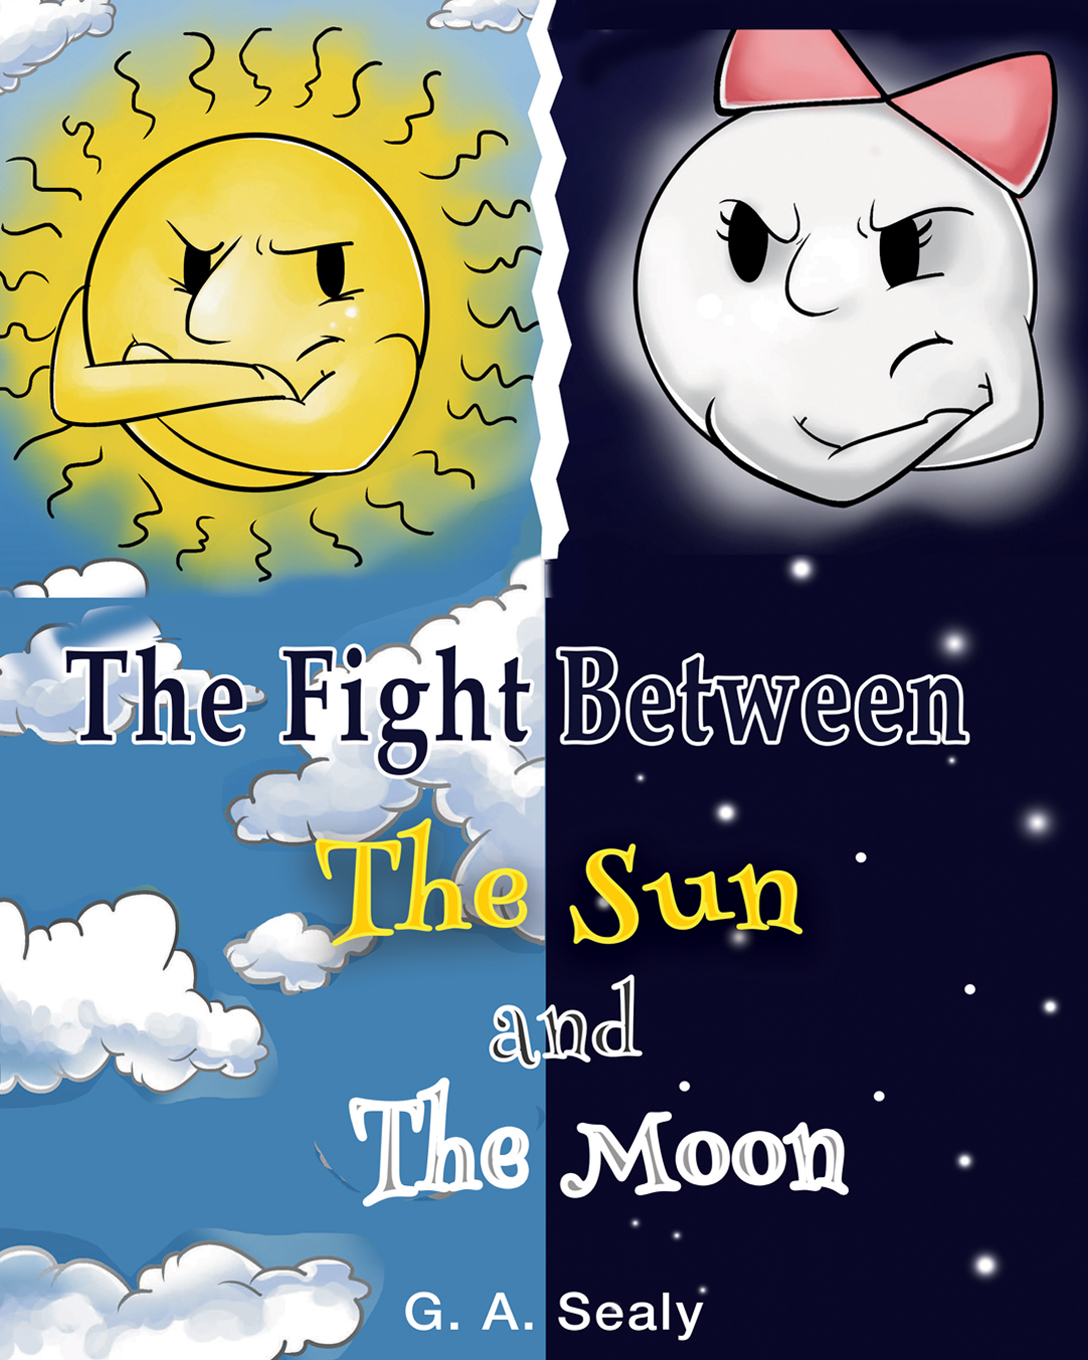 The fight between the sun and the moon